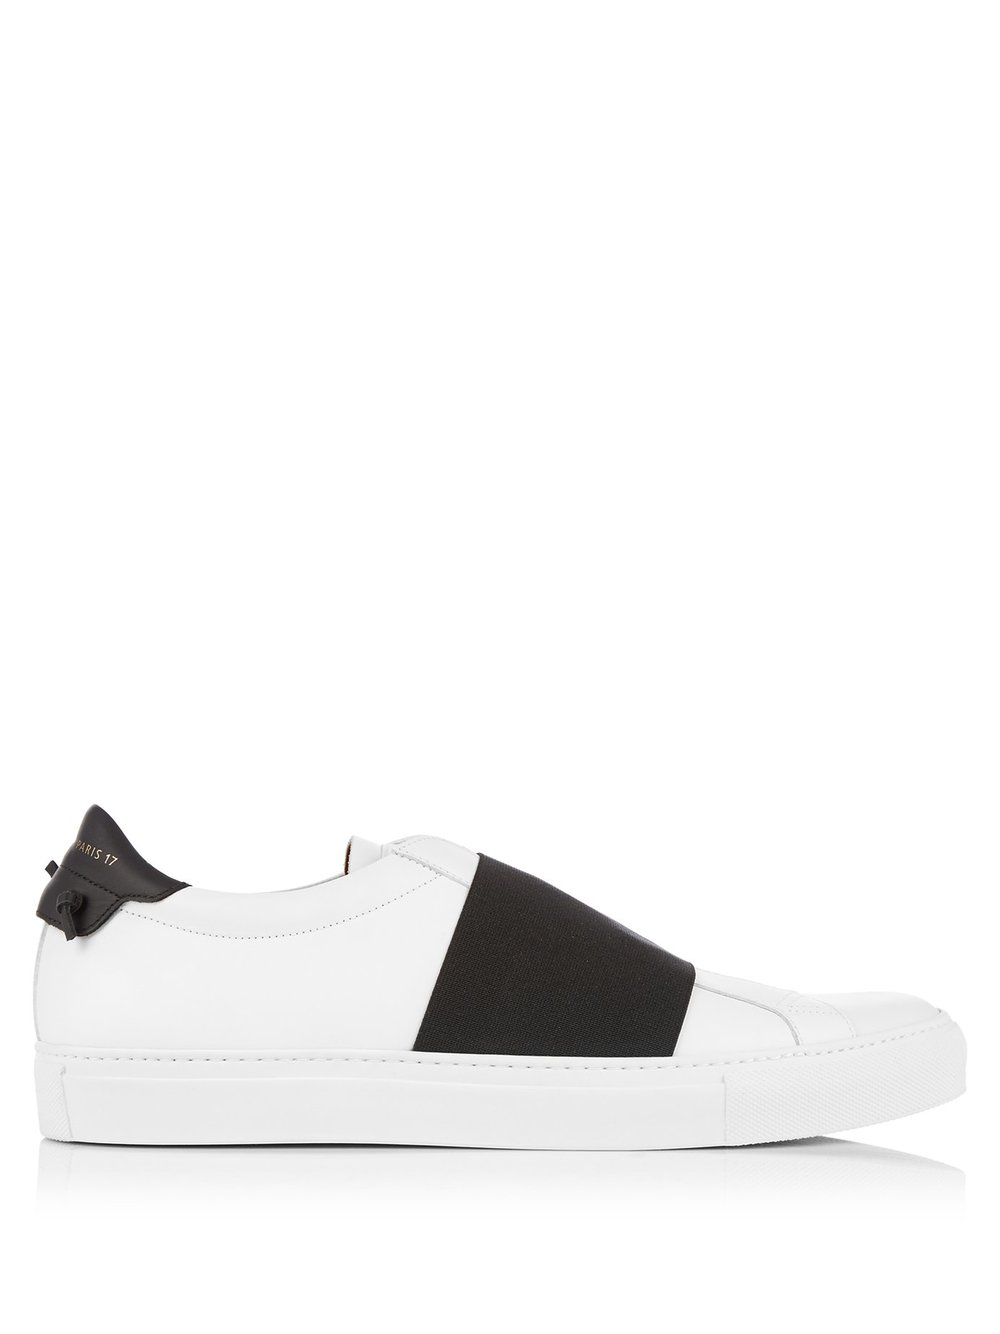 Givenchy sneakers at Matches Fashion - £425